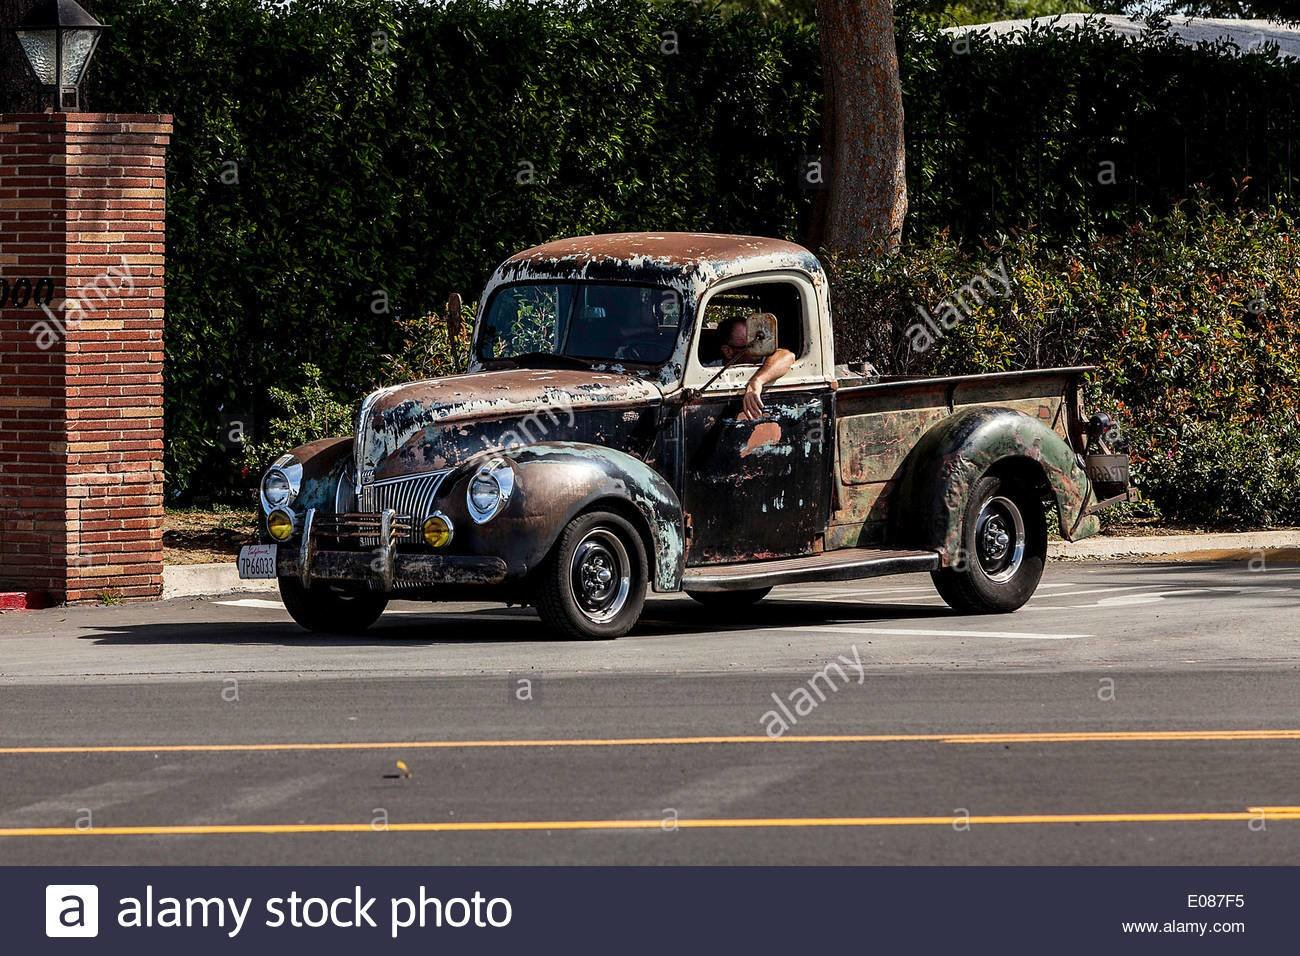 Latest A 1940 Ford Truck Stock Photo 69023001 Alamy Free Download Original 1024 x 768